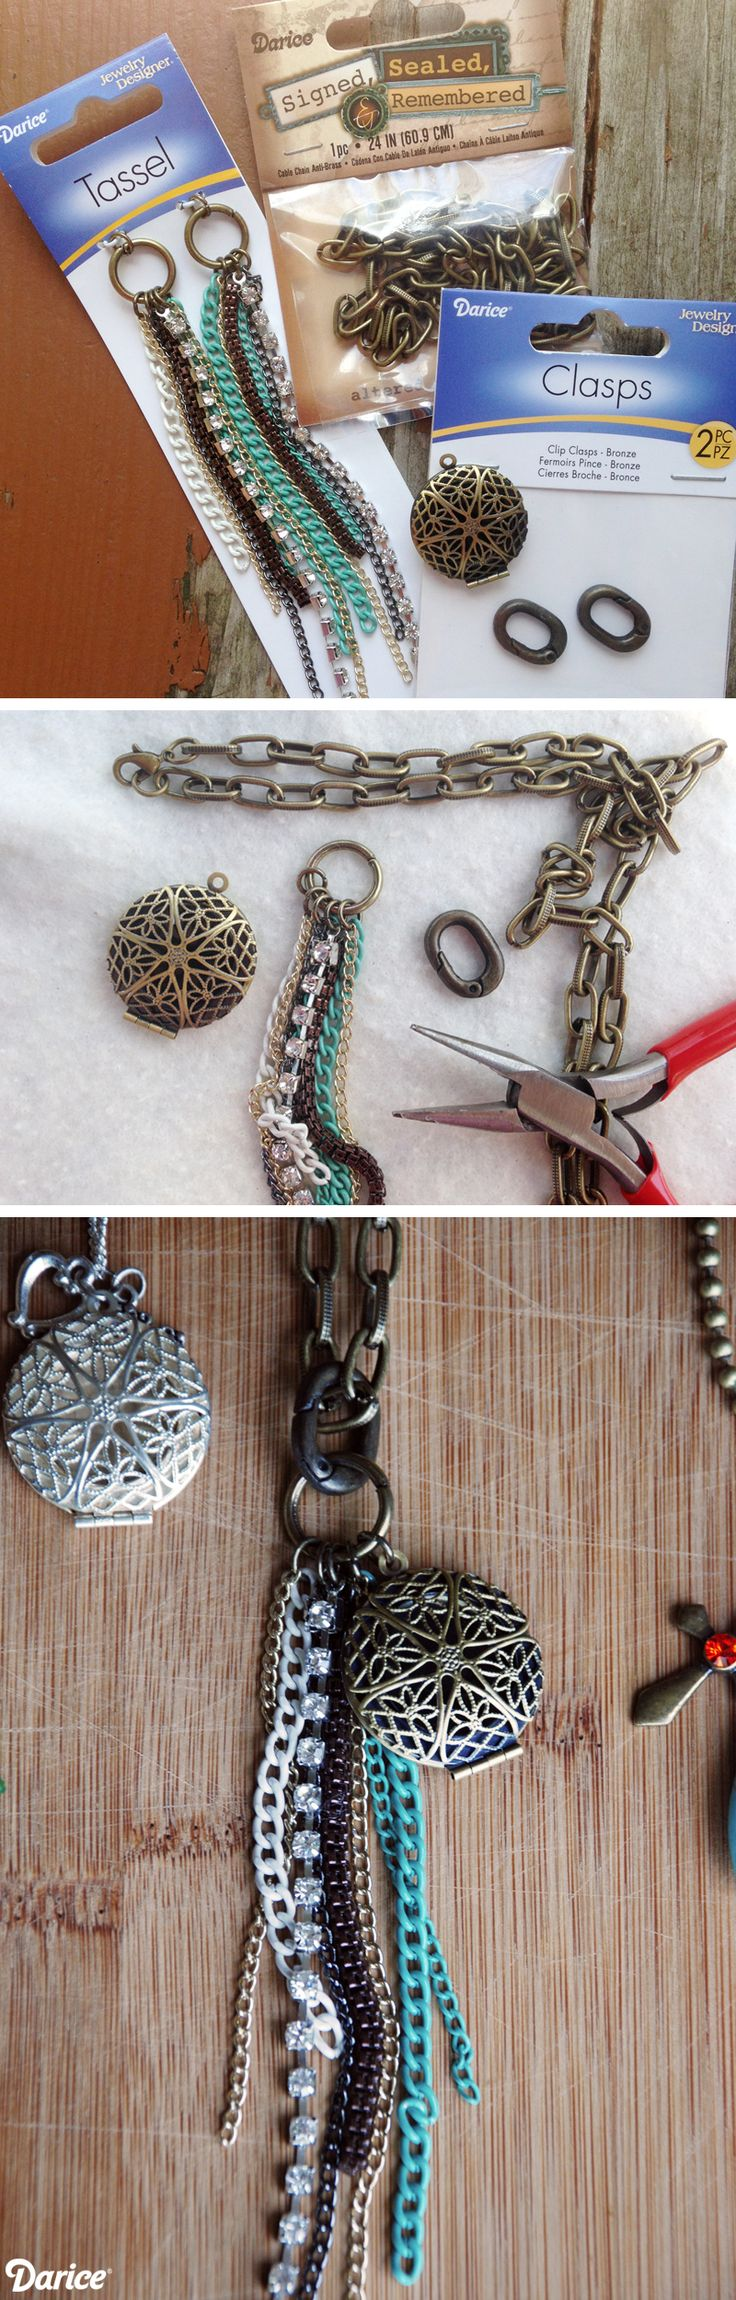 DIY Essential Oil Diffuser Necklaces Find essential oils here: http://www.mydoterra.com/vogele/